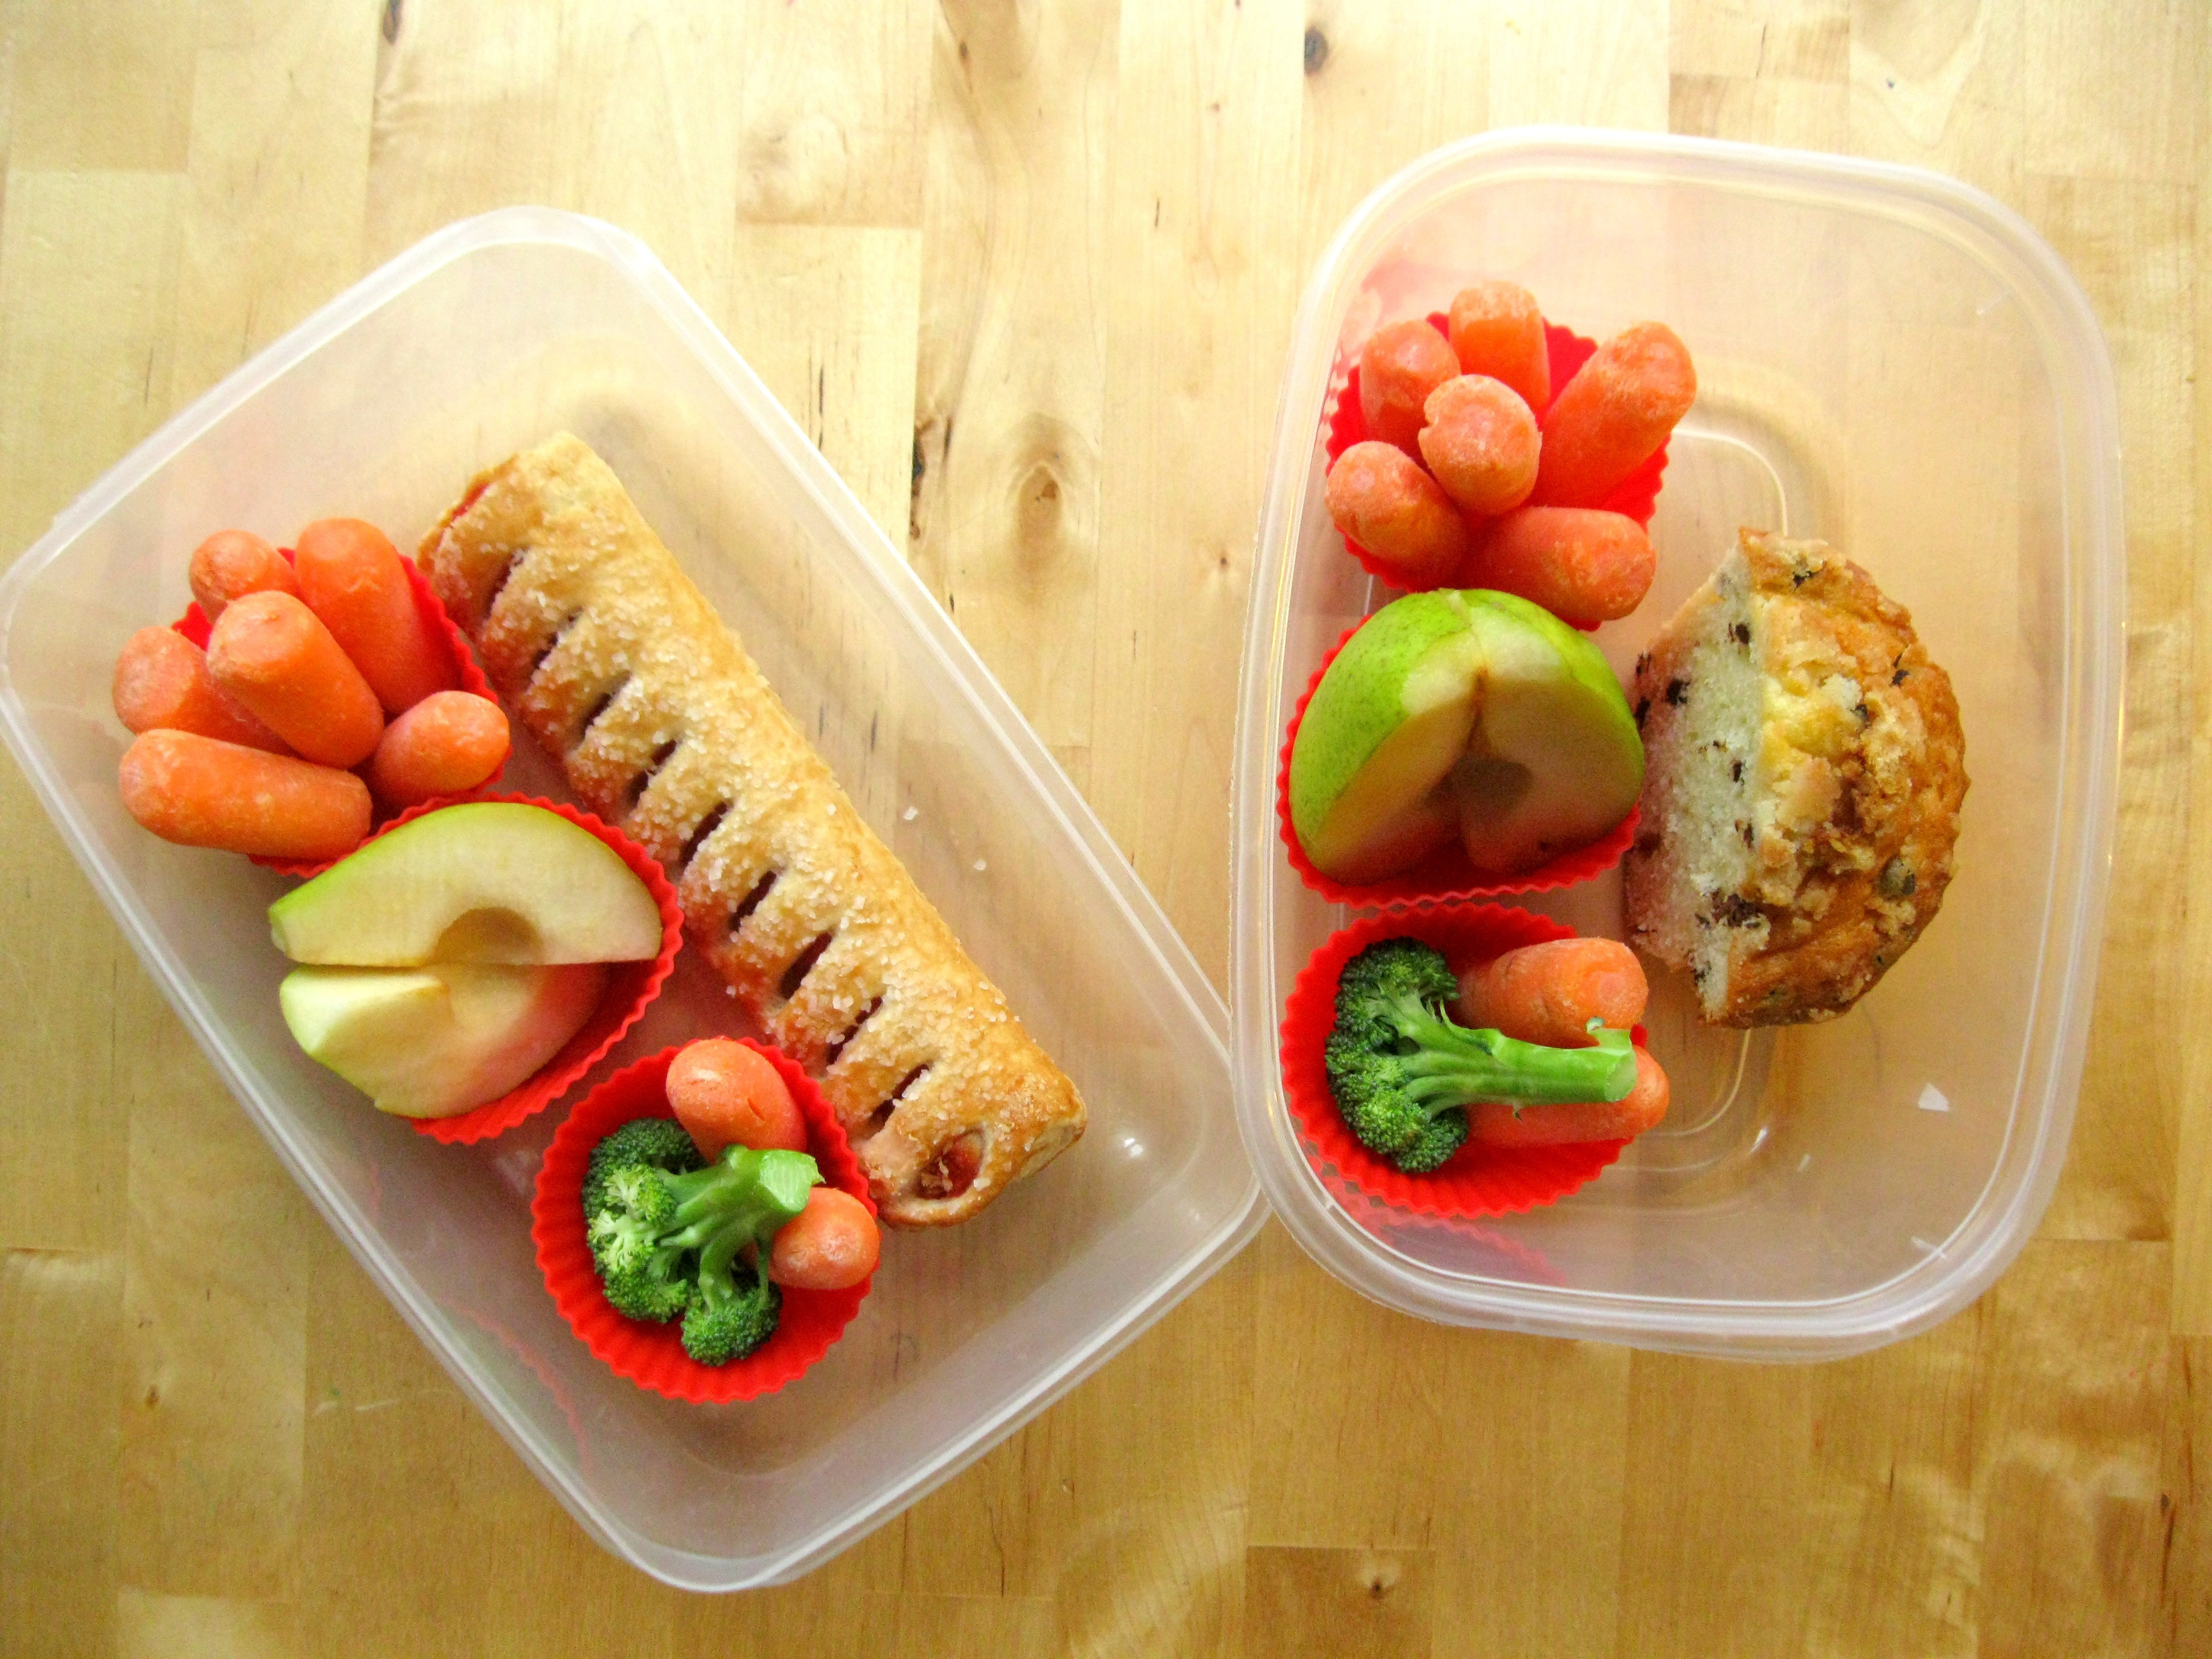 Healthy Snacks For Toddlers  In the Kitchen Self Serving Snack Box Tutorial and